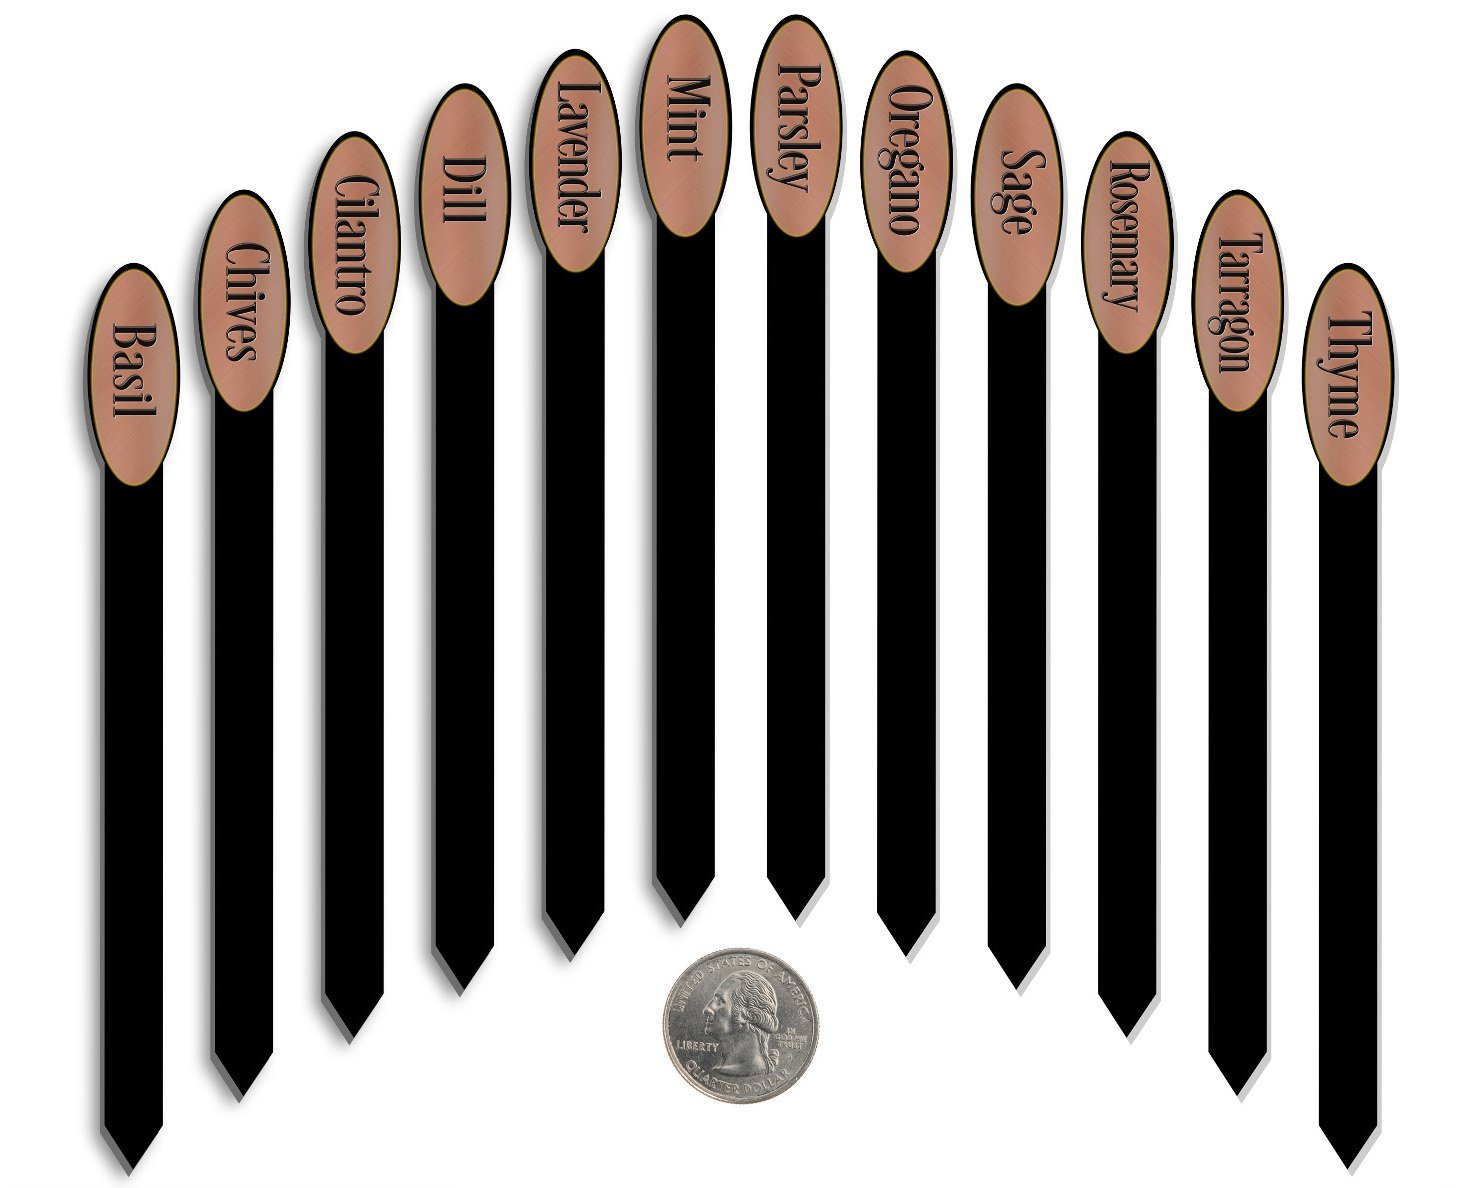 Red Tail Crafters Herb Stakes 06in 12/set Metalgraph Acrylic Oval Top Brushed Copper